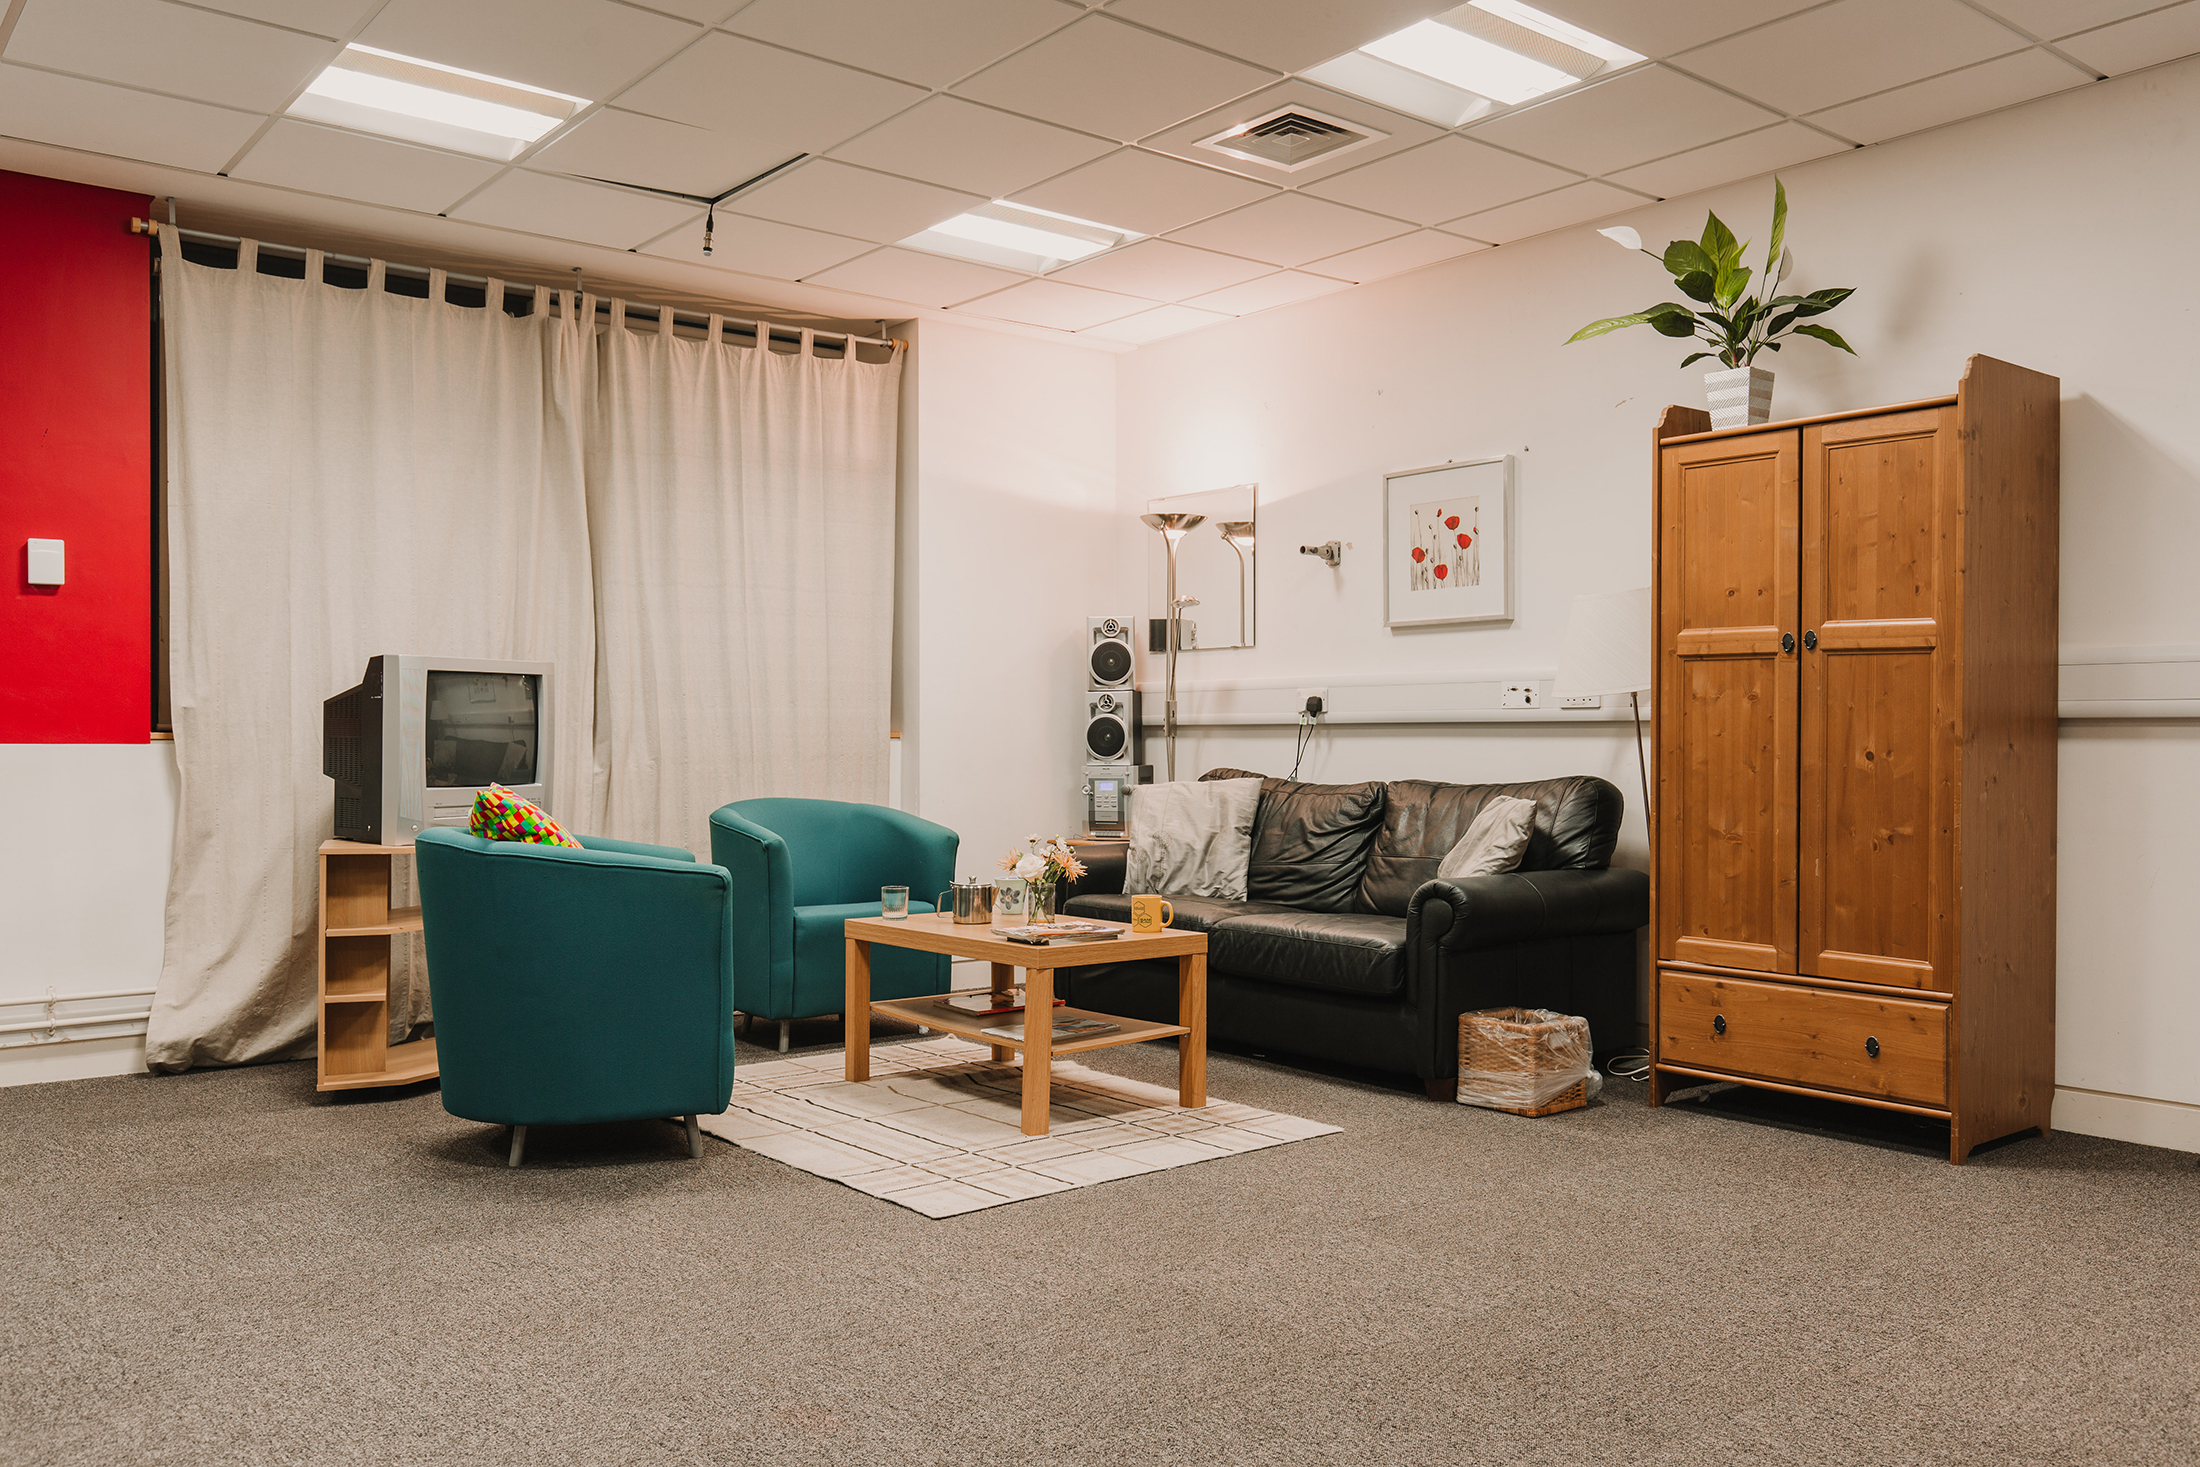 Nursing and Midwifery facilities - 10 home environment